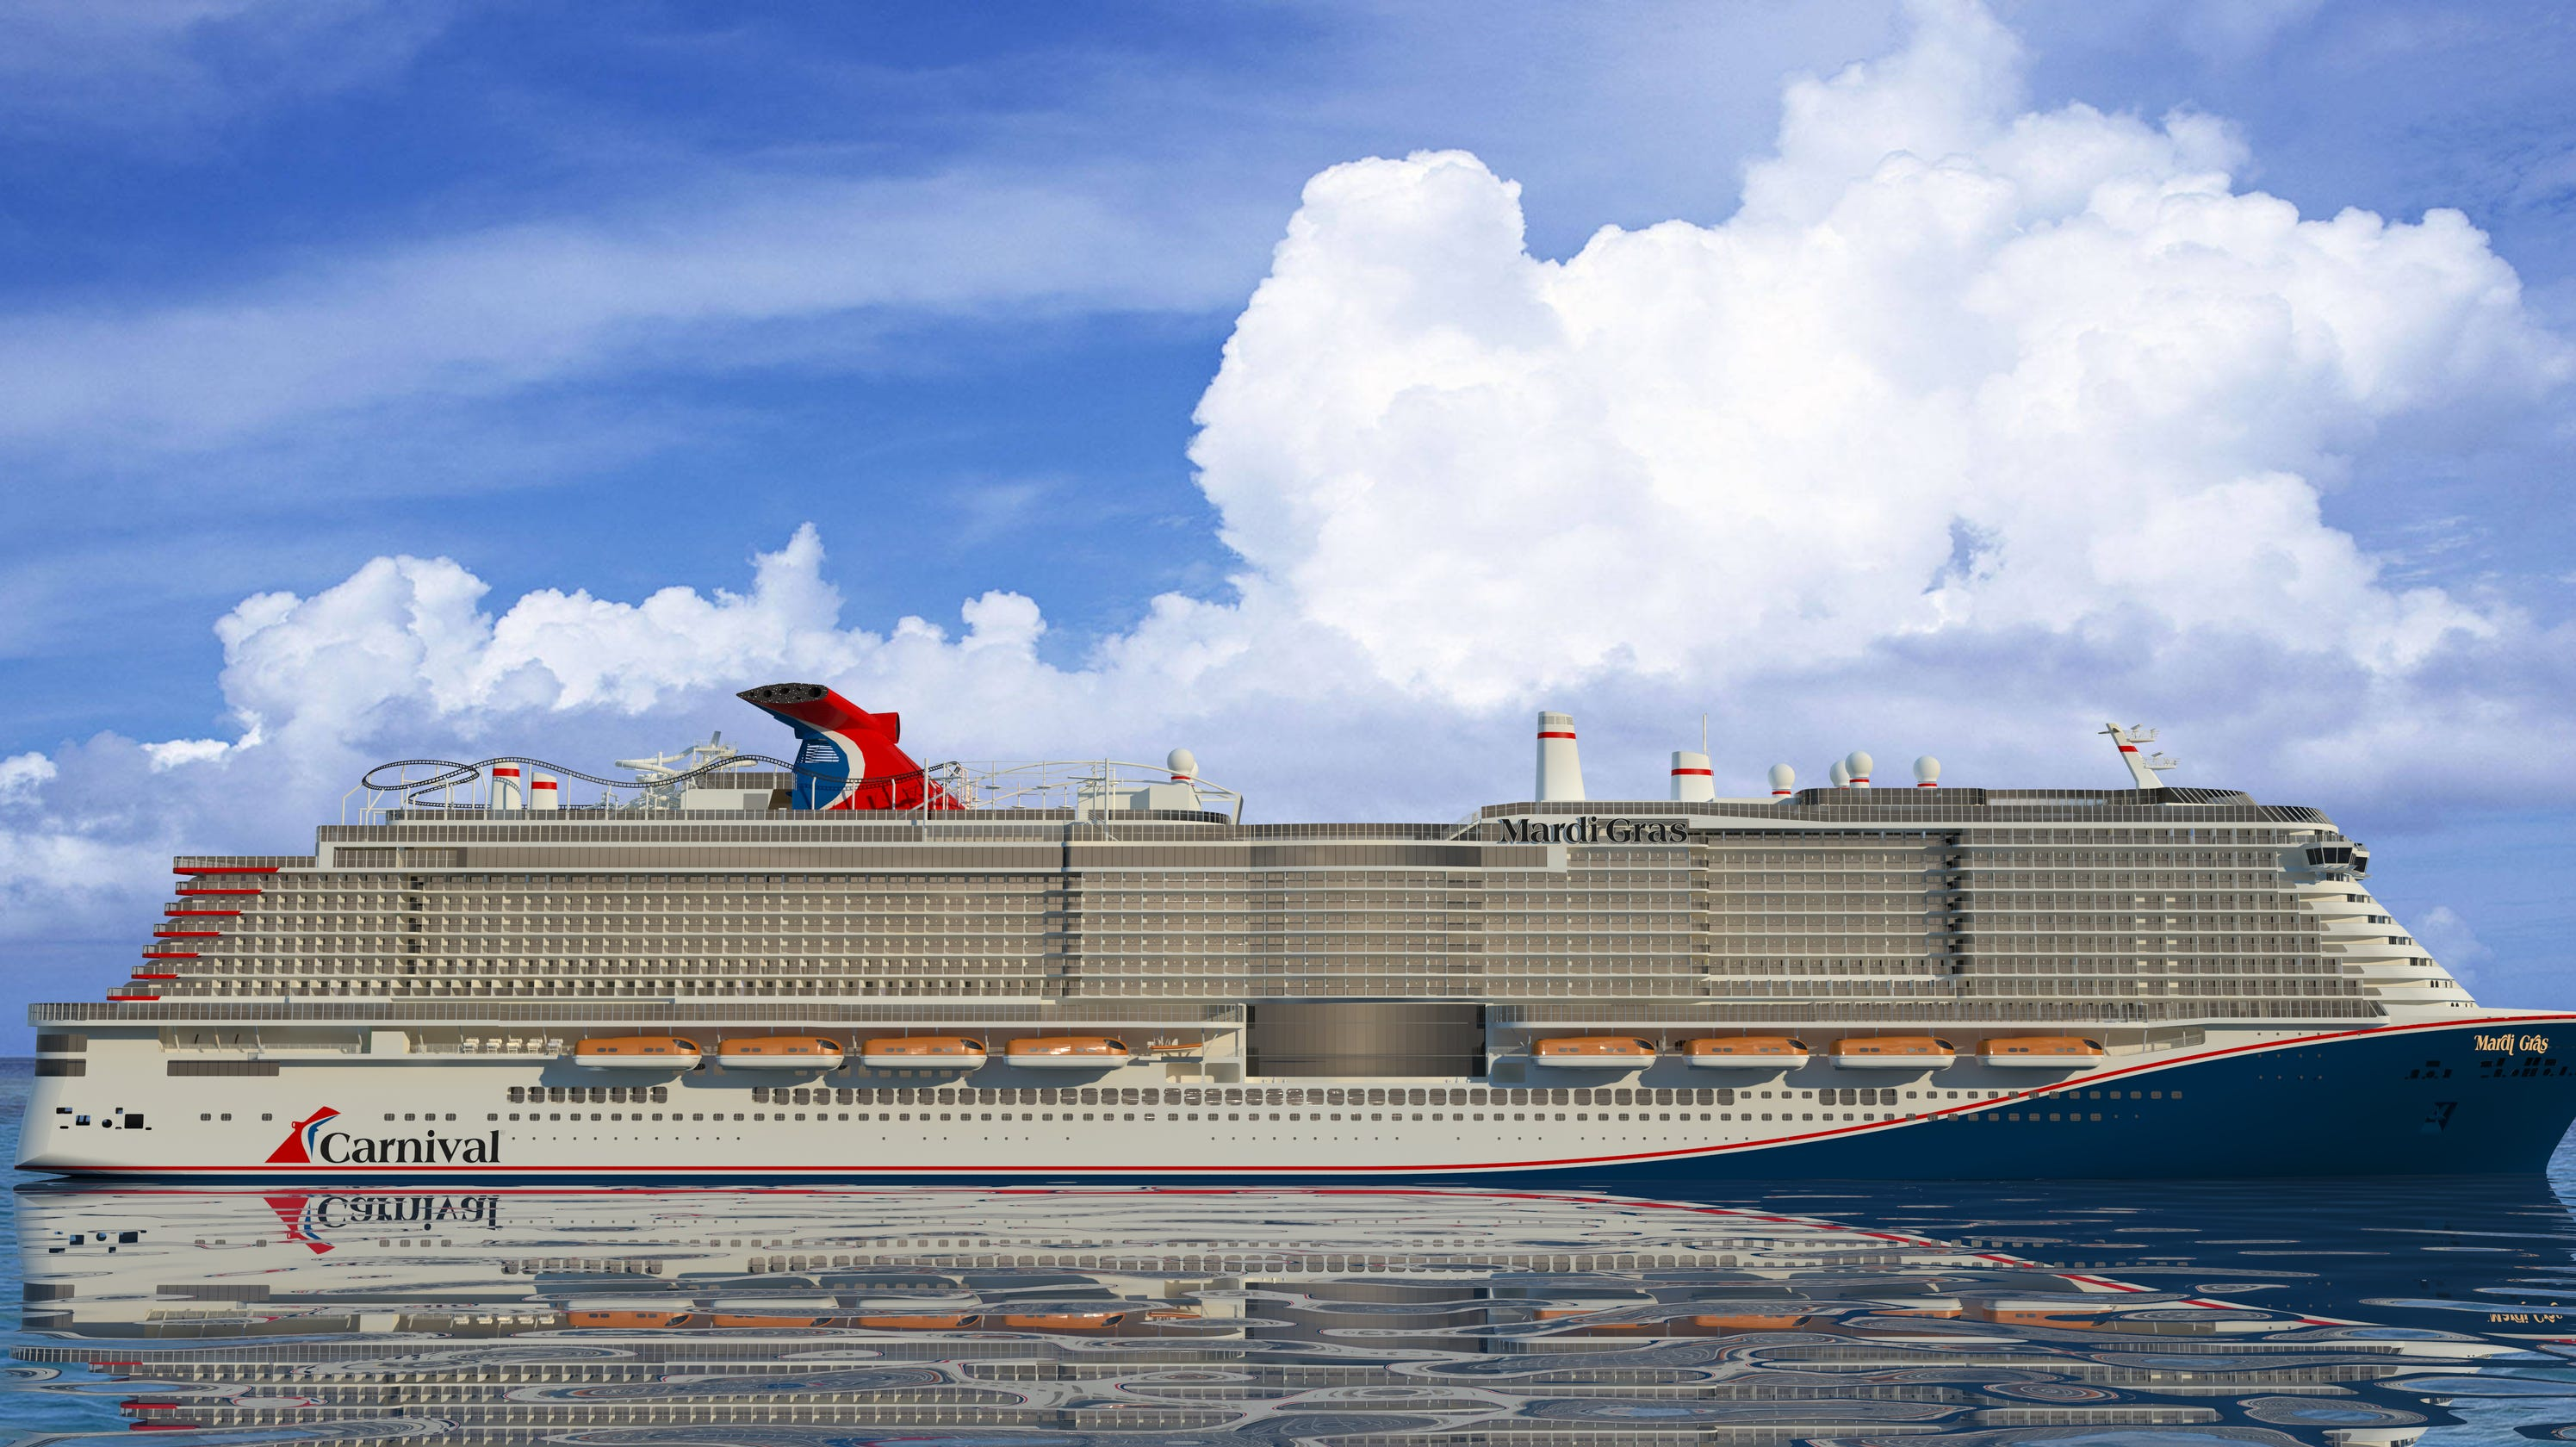 Construction of Mardi Gras delayed, canceling 4 Port Canaveral ...